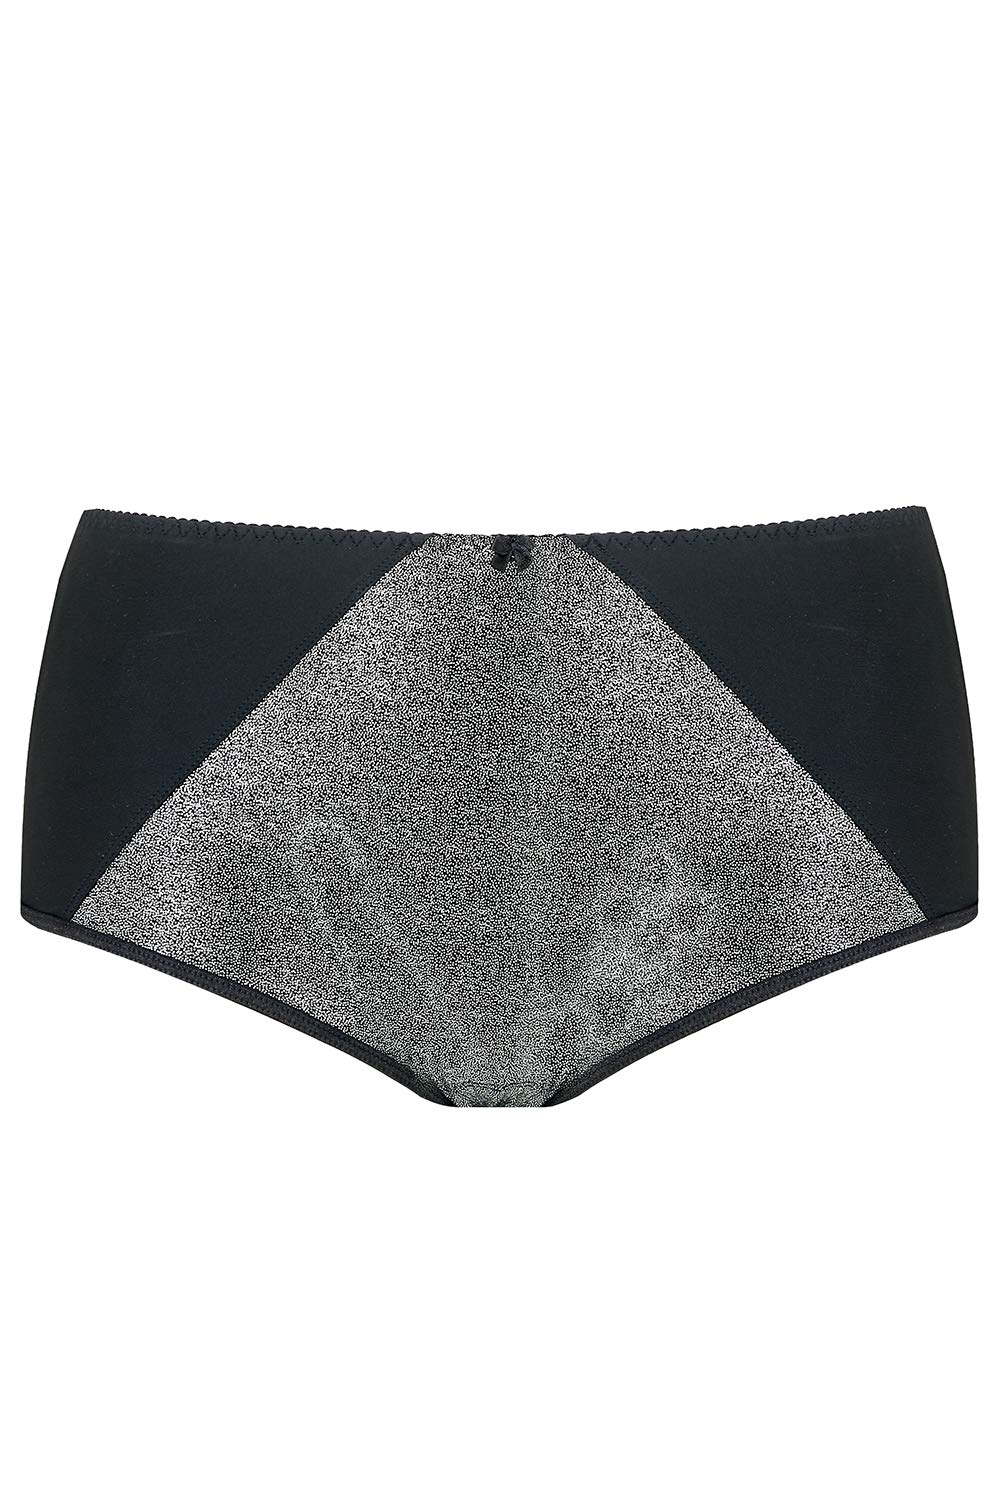 Silver Sparkly Metallic Panties (Regular and Plus Size) Sparkle Glitter Glam